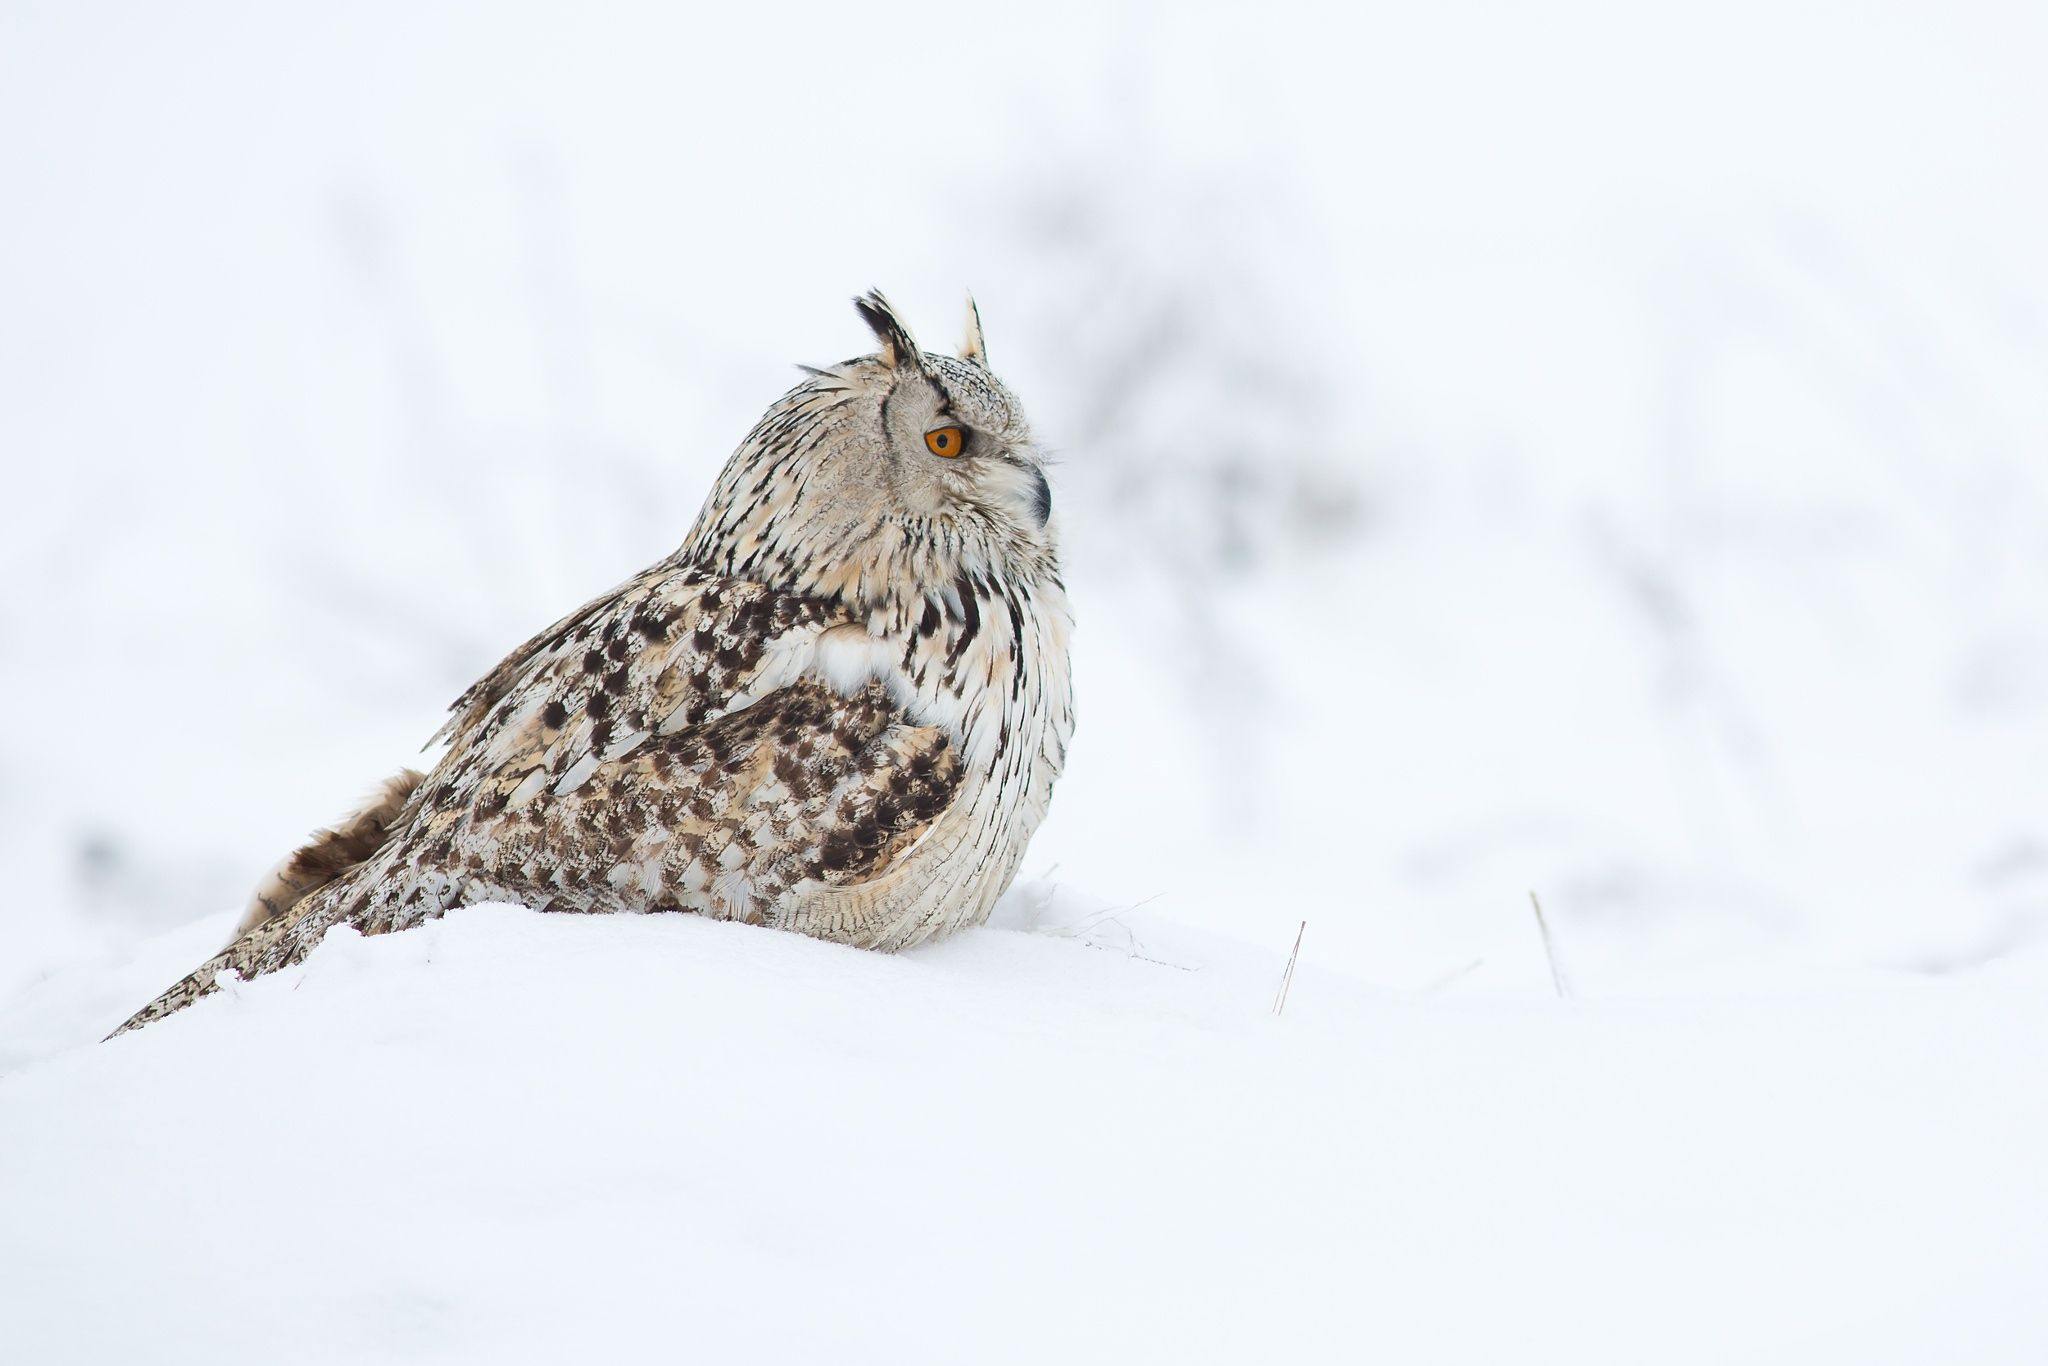 Bubo Bubo Sibiricus by Milan Zygmunt on 500px